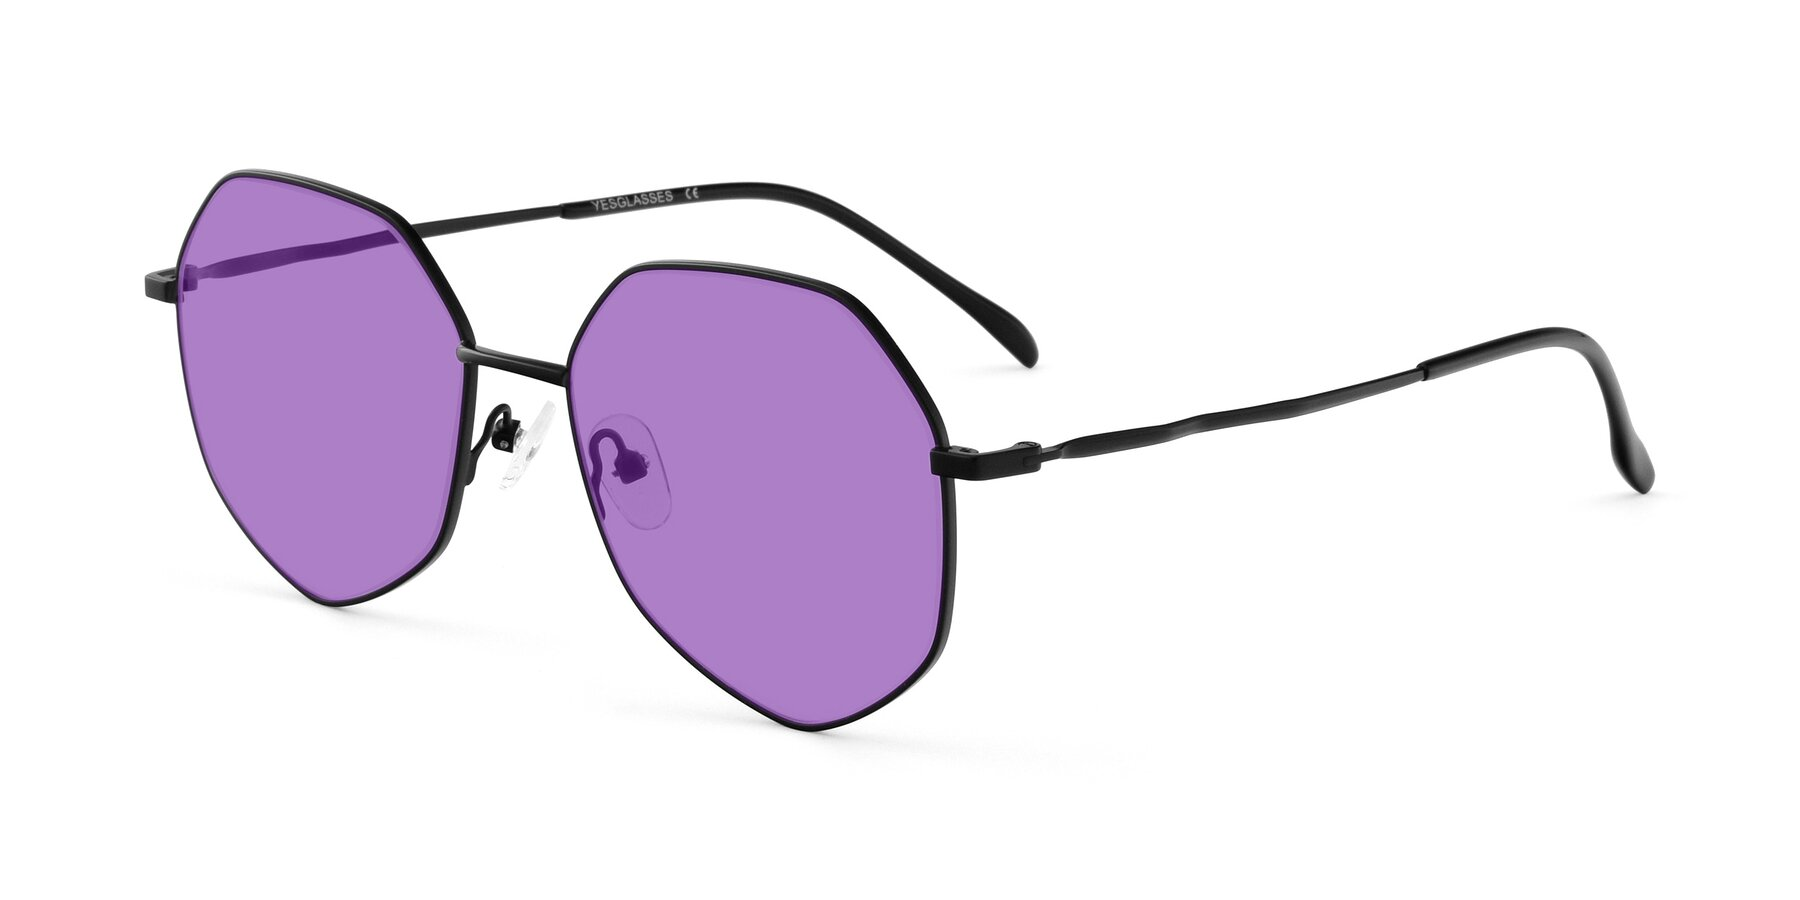 Angle of Sunshine in Black with Medium Purple Tinted Lenses